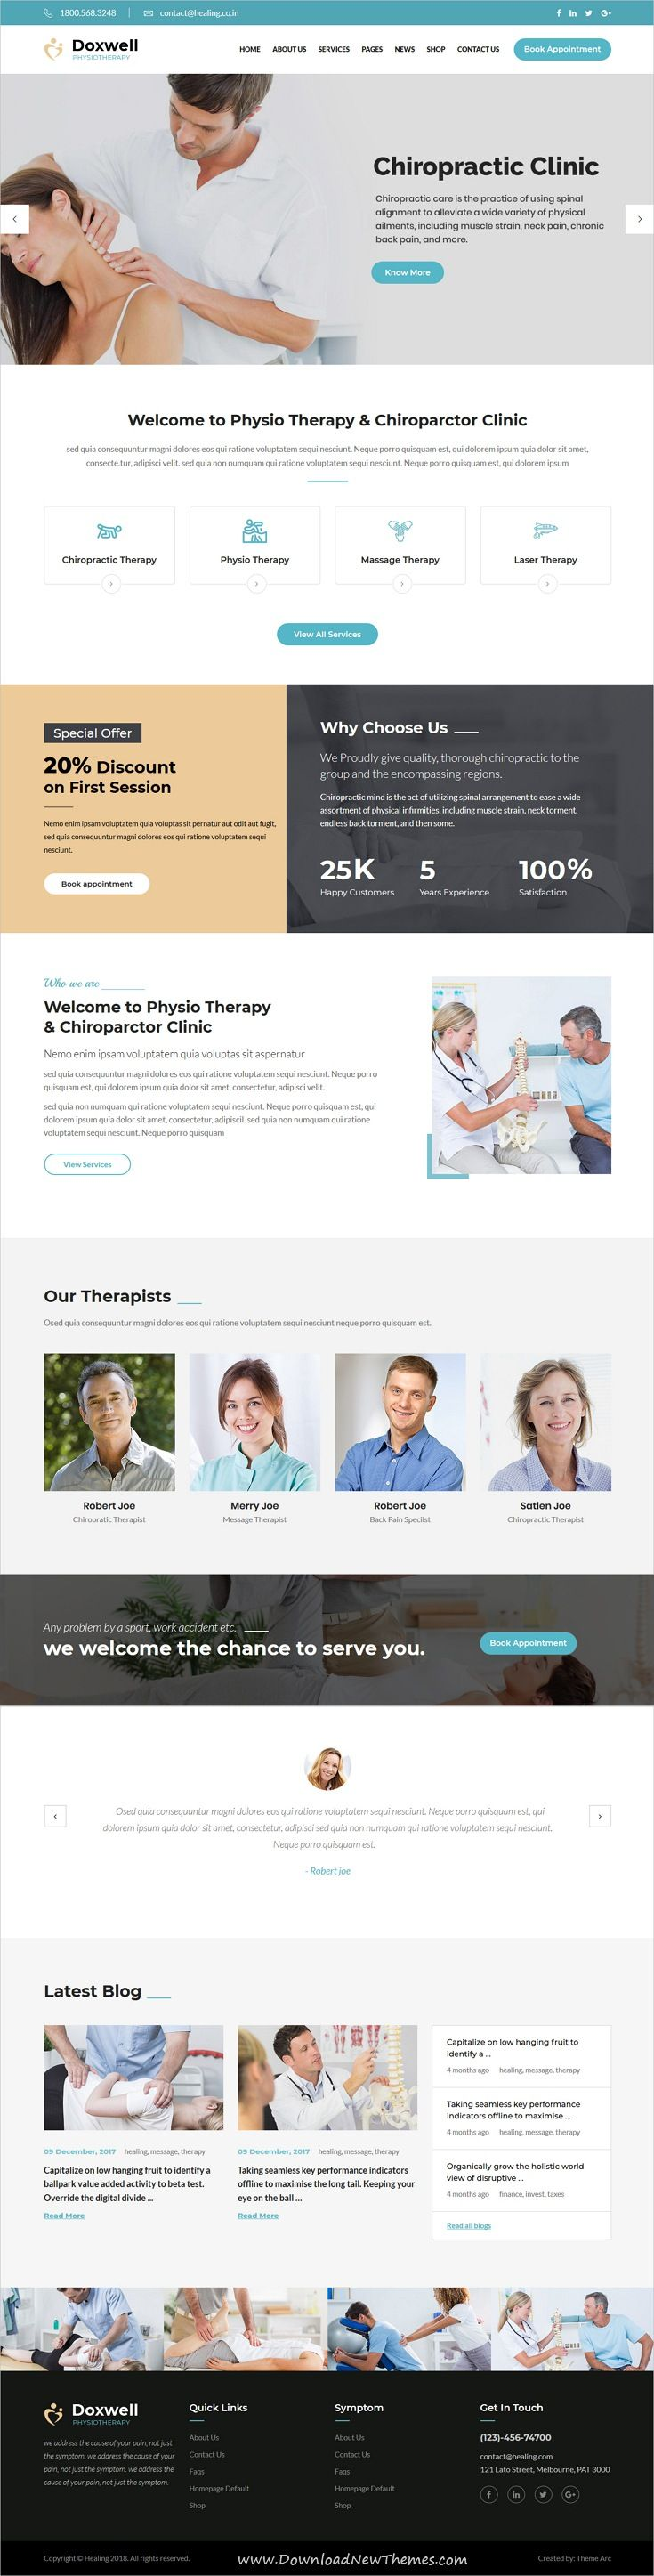 Doxwell Is Clean And Modern Design 3in1 Responsive Wordpress Theme For Medical And Physical Therapy Rehabilitation Centers And Massage Centers Website To